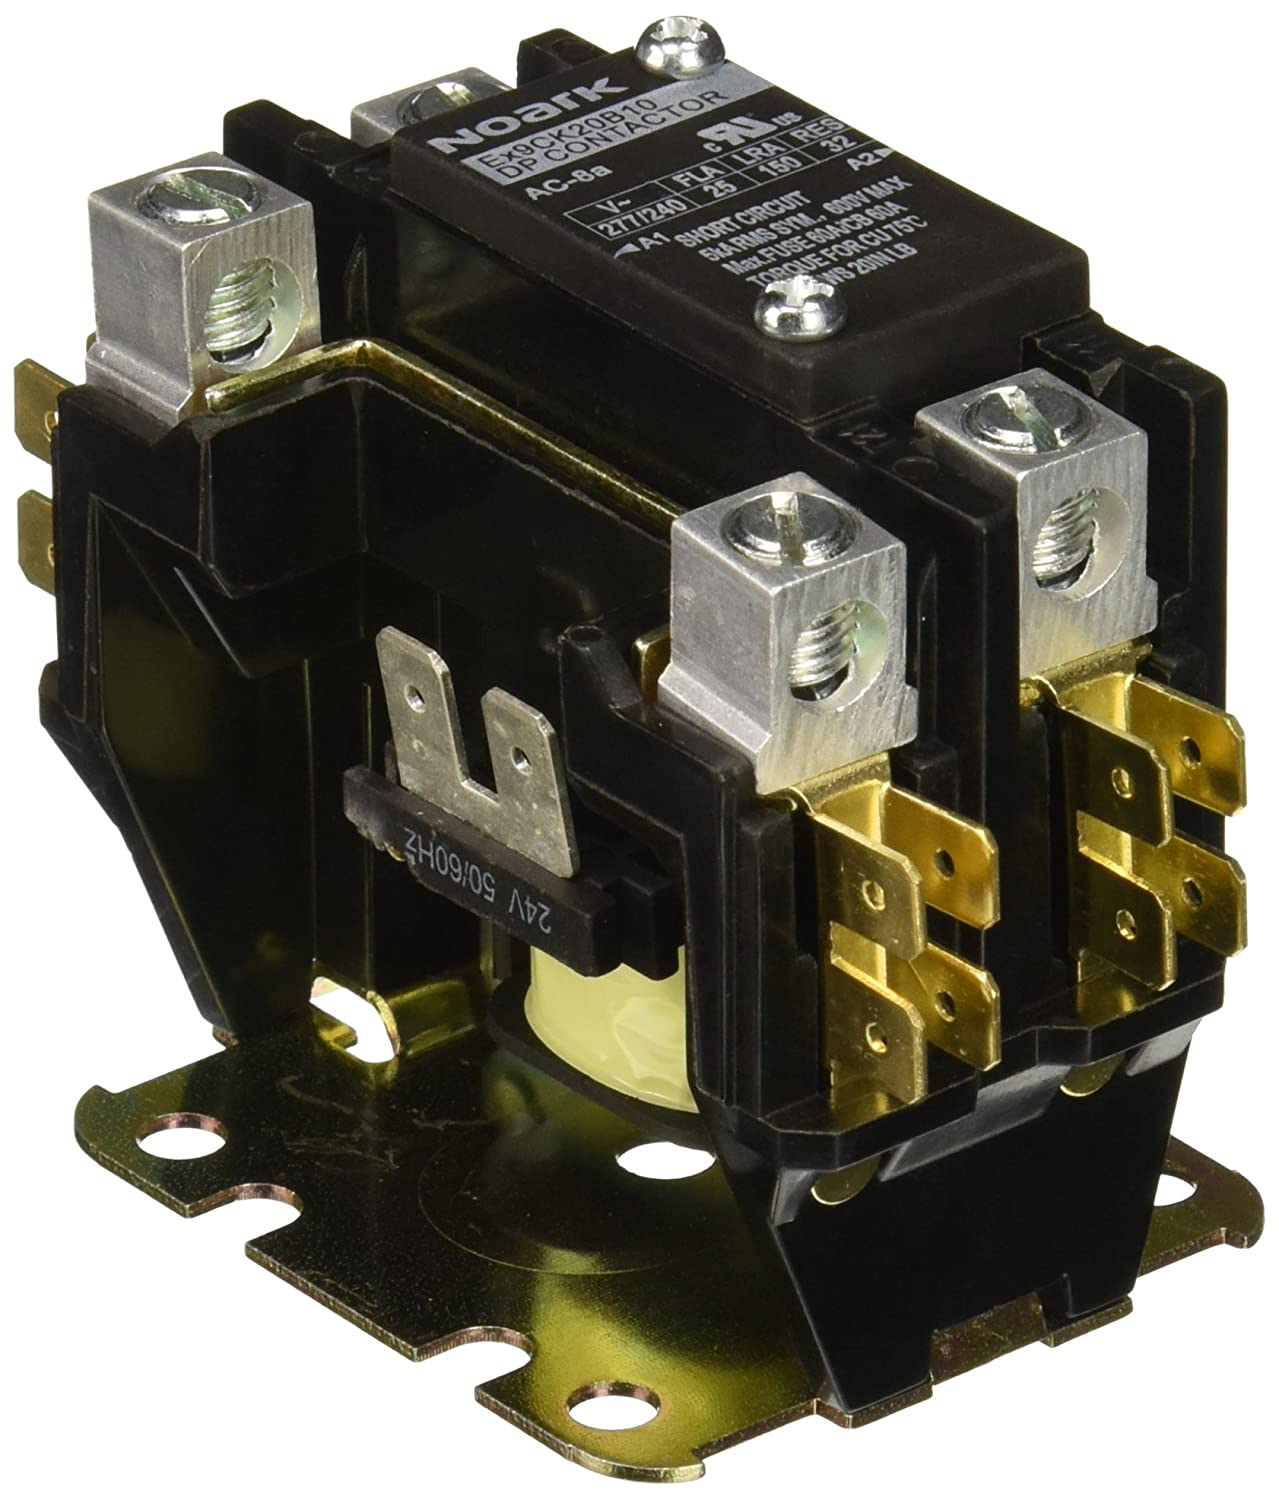 81xnZJyPFCL._SL1500_ noark electric ex9ck20b10b7 definite purpose contactor, lug definite purpose contactor wiring diagram at couponss.co